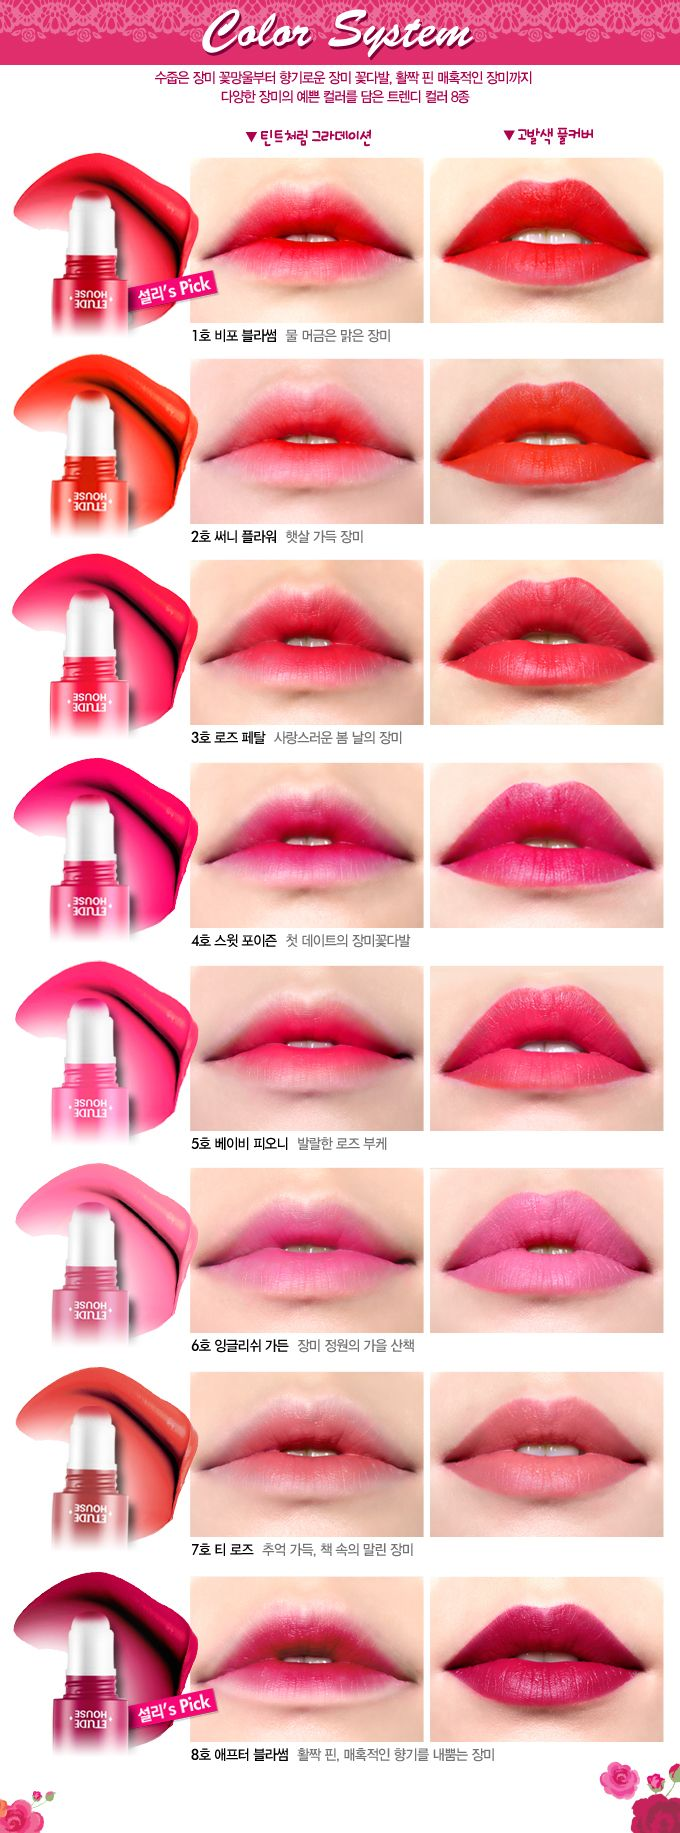 Etude House &Rose Rosy Tint Lips Colour System; so after reading one (yes only ONE) review for the cushion lip products, I really think I want to try one since they seem to be more pigmented than the milk tints *__* and a bit handier to carry around than the little tint jars!